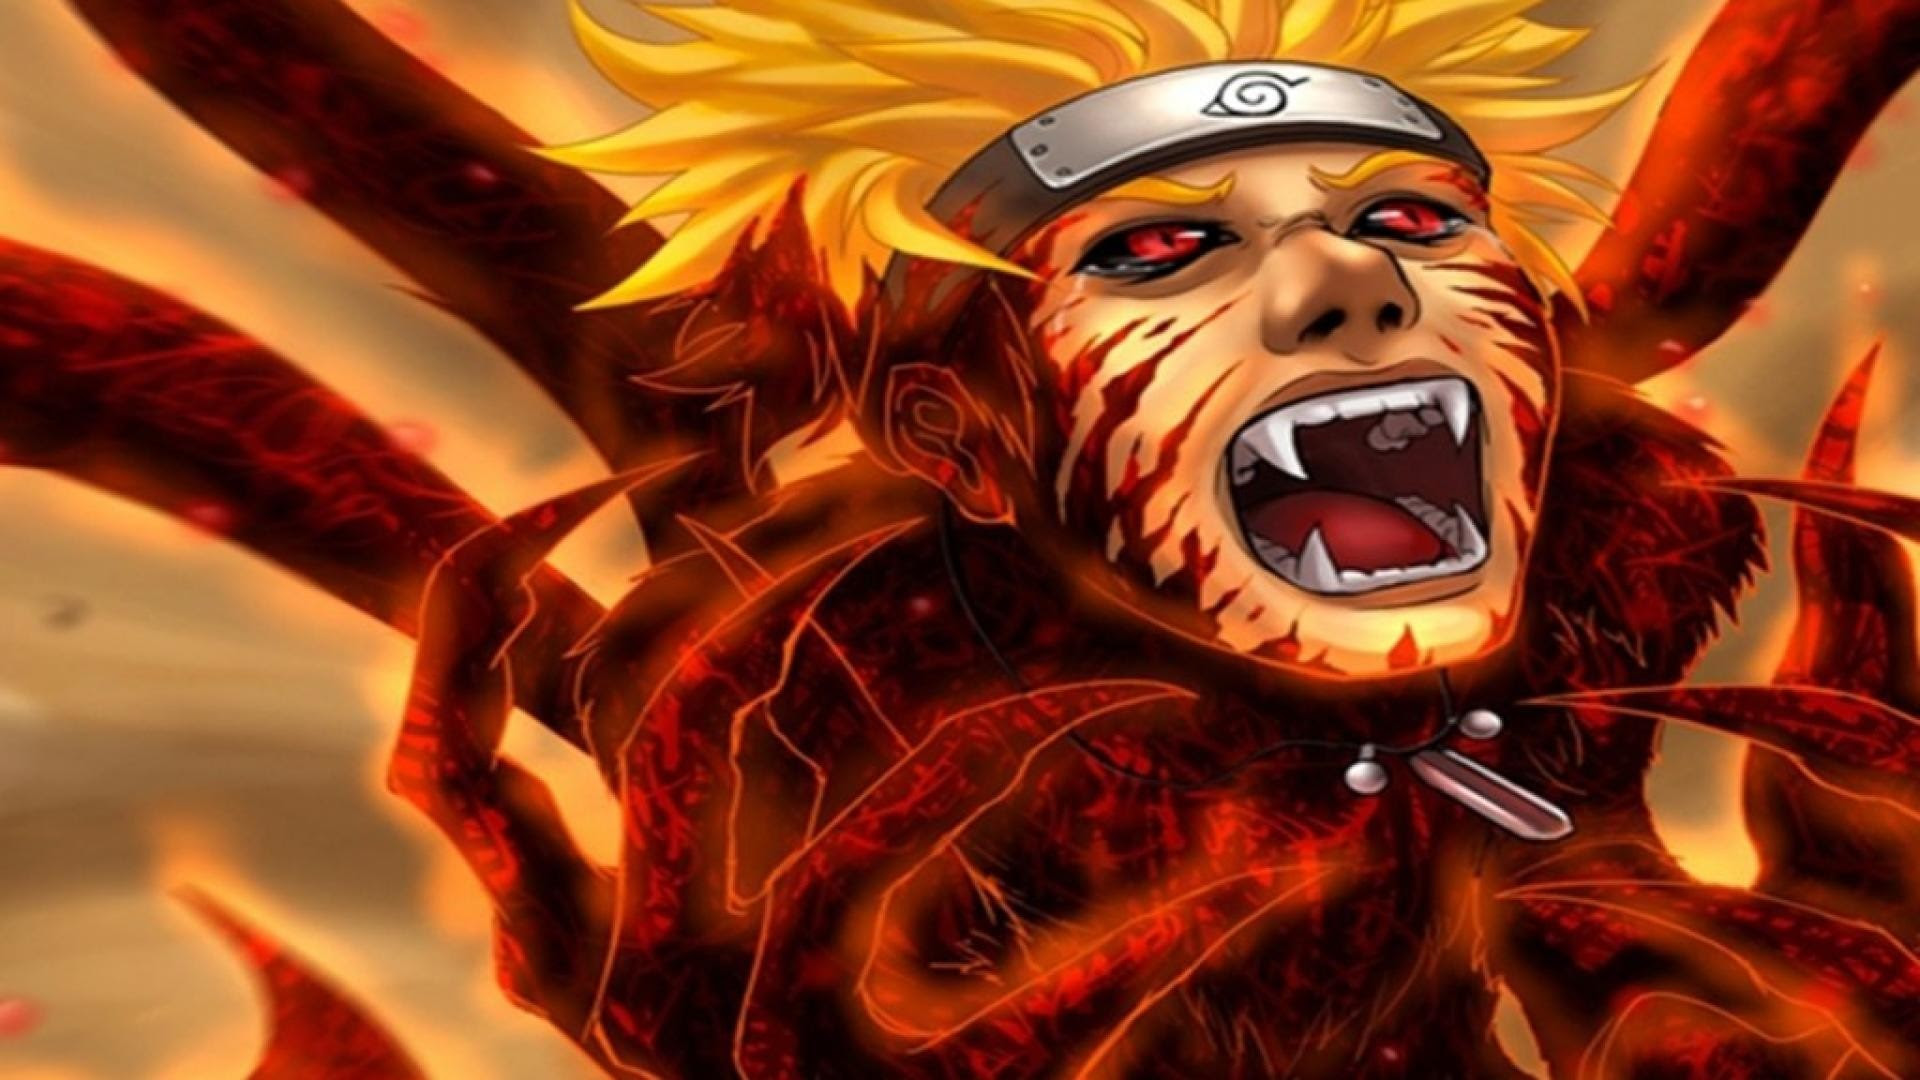 Naruto Supreme Iphone Wallpaper New Wallpapers